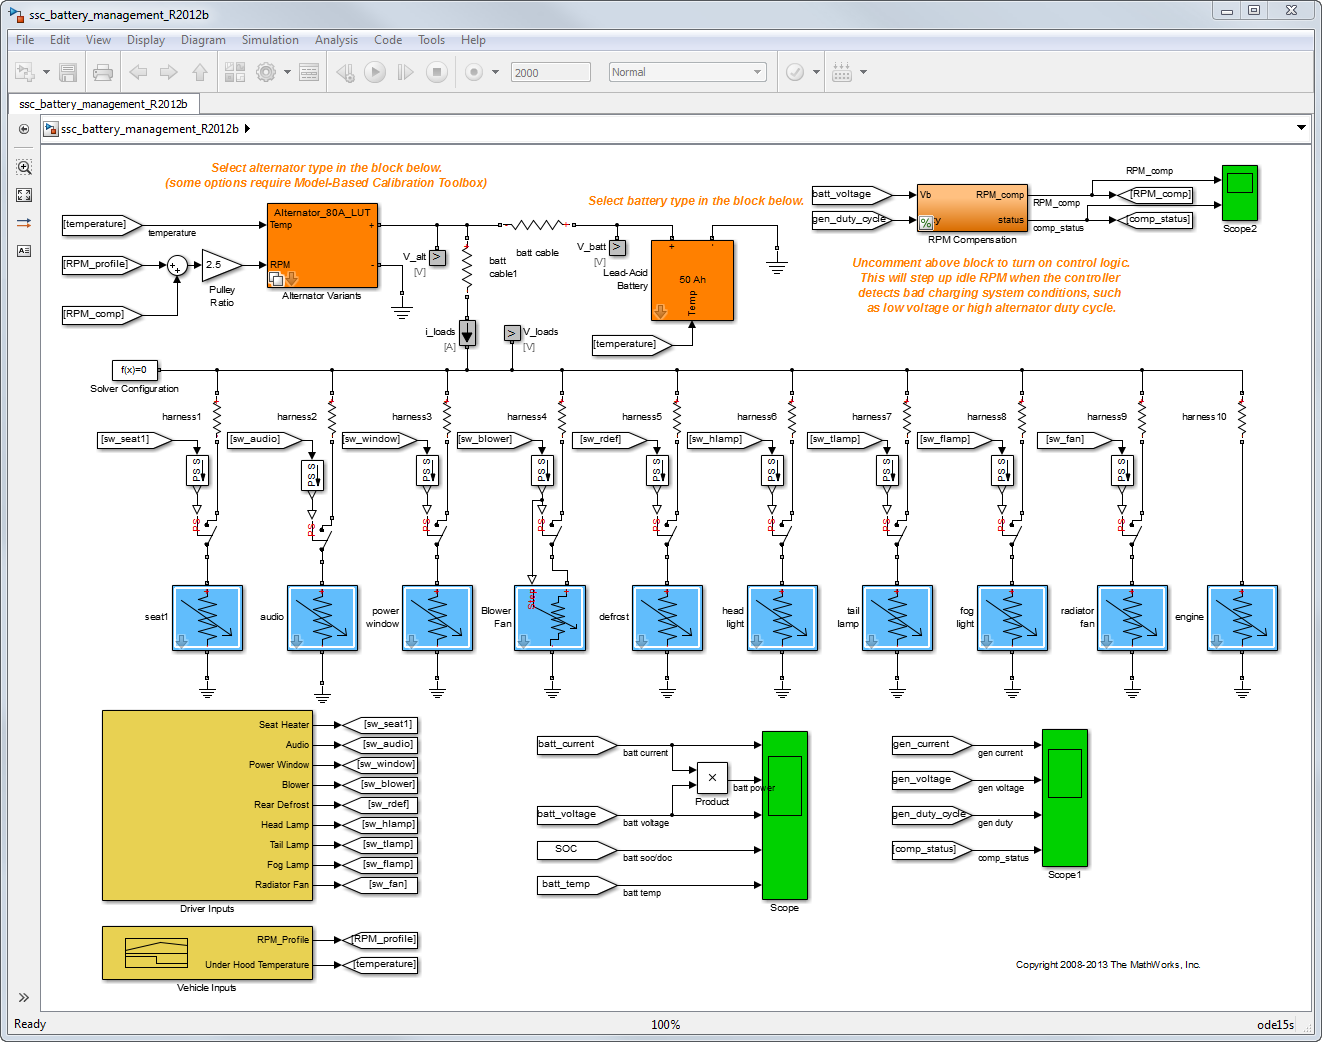 Automotive Electrical System Simulation and Control